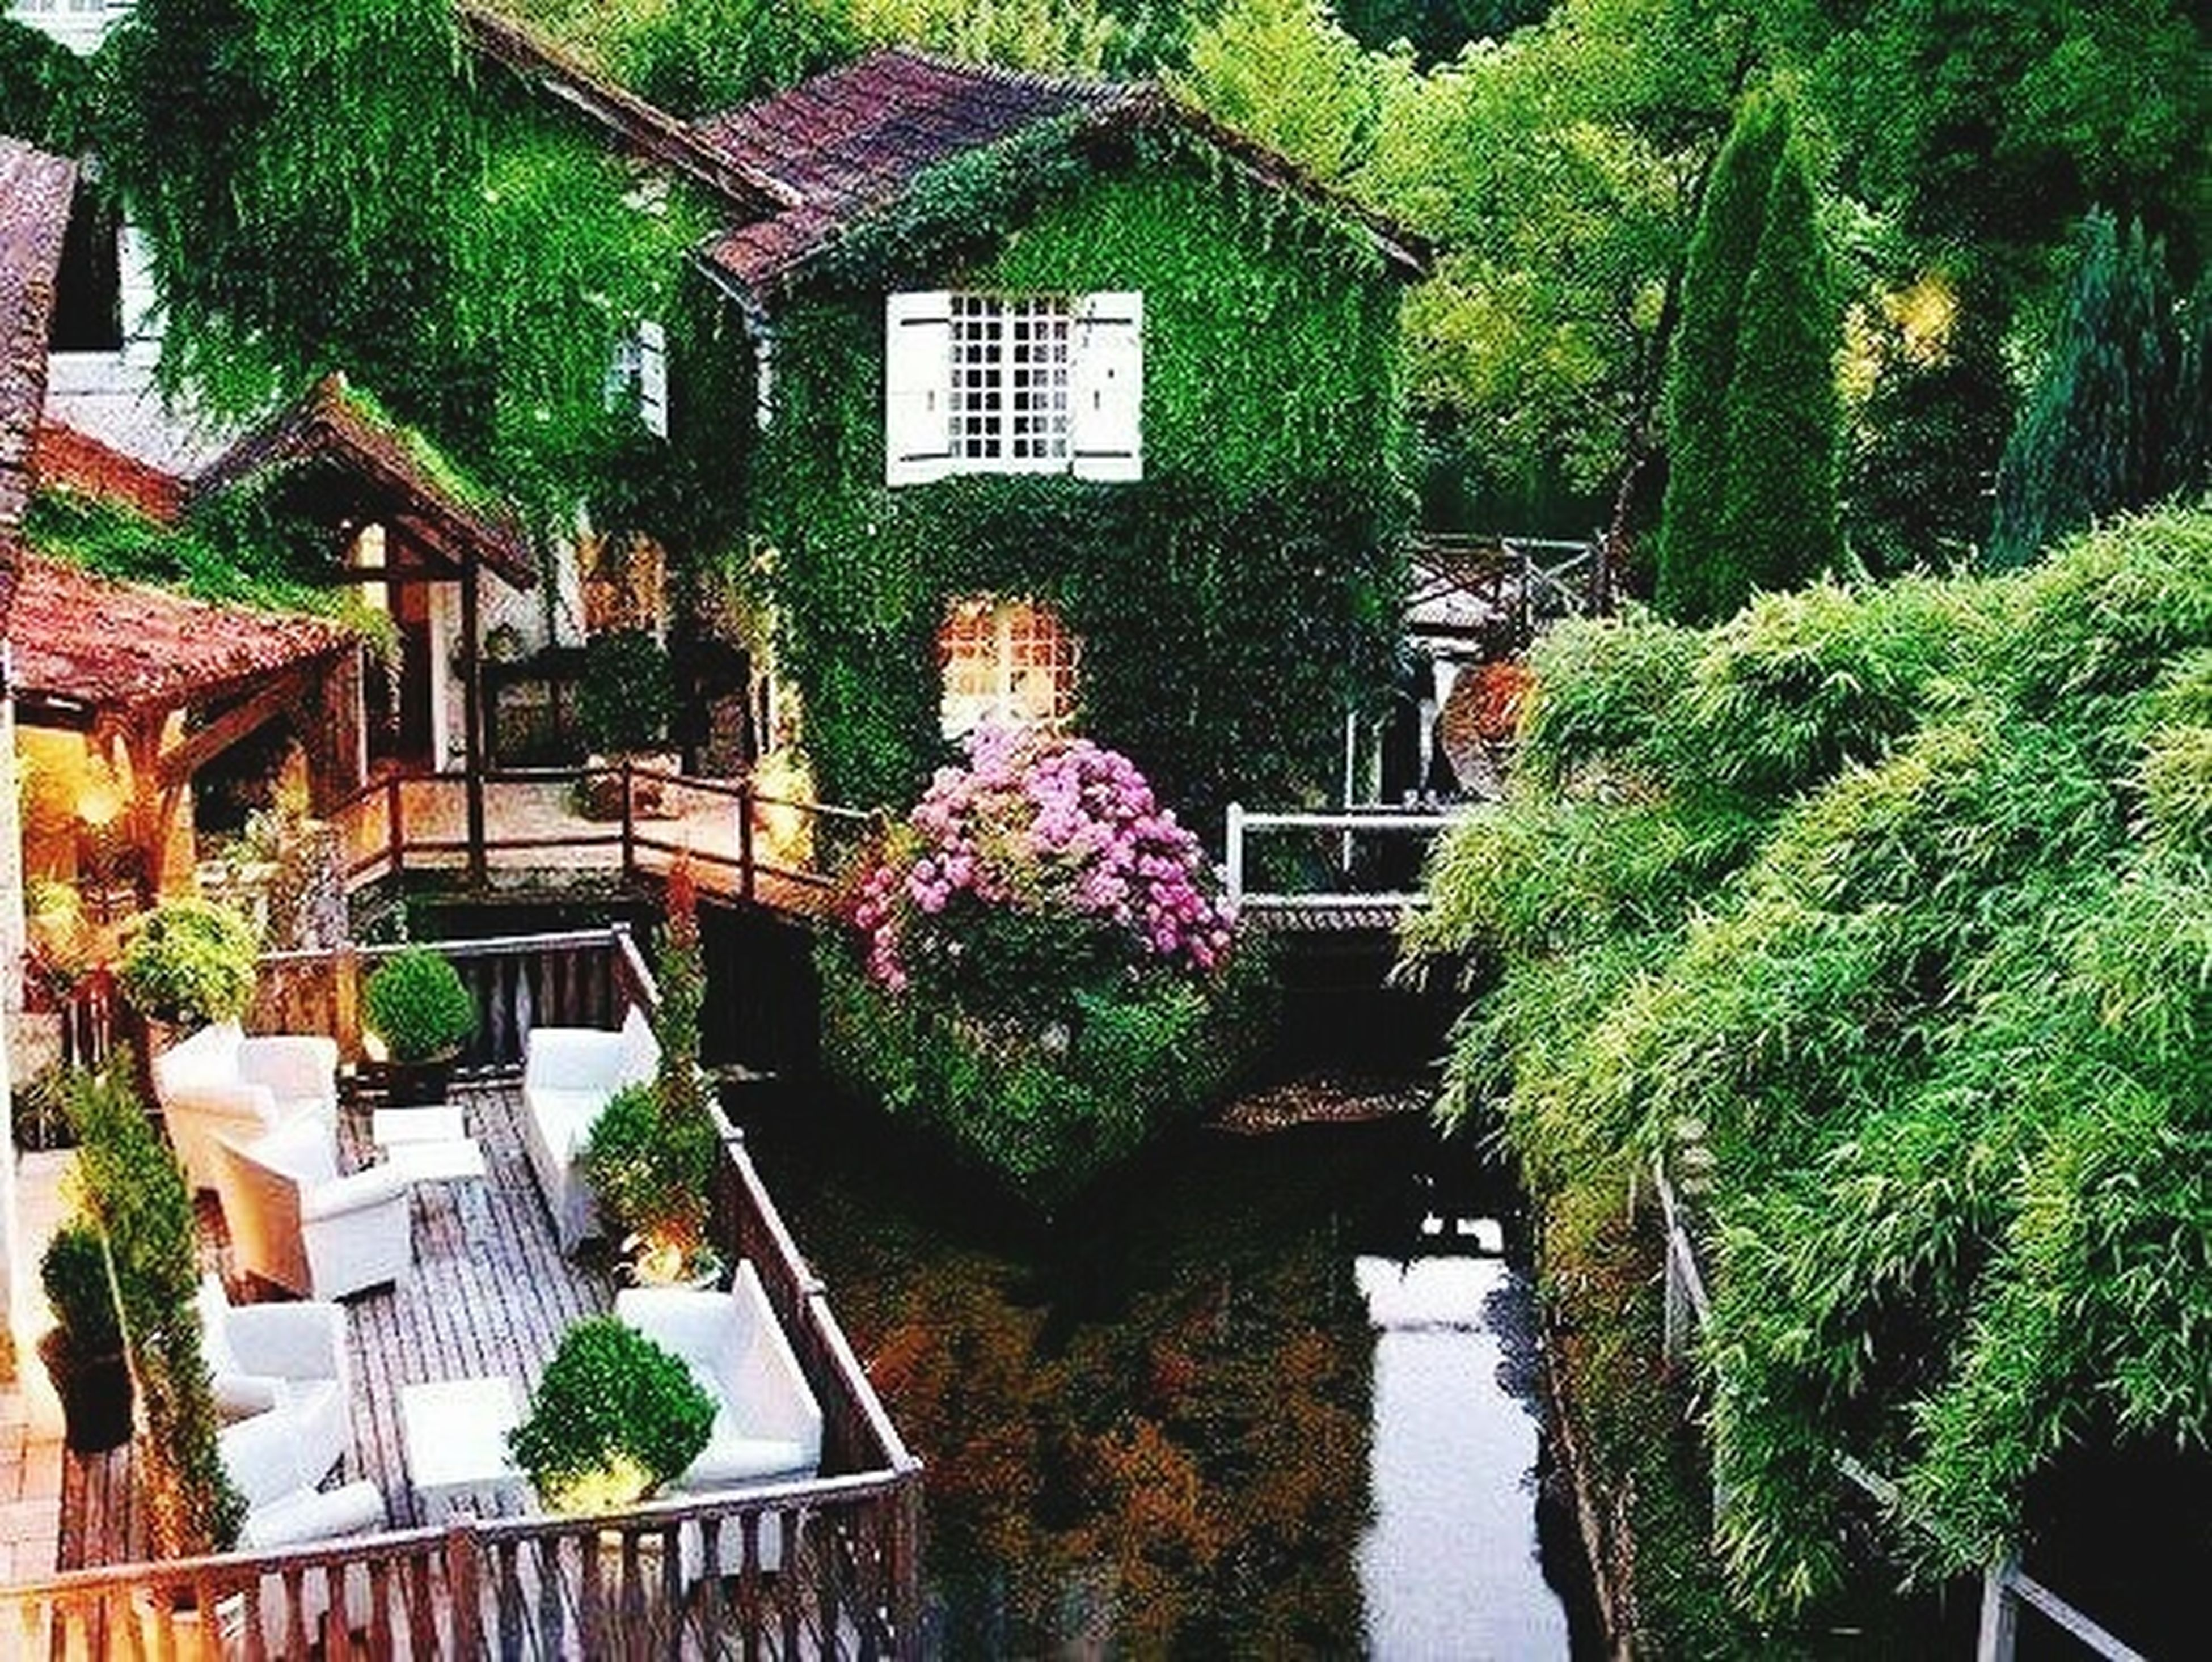 building exterior, built structure, architecture, tree, growth, plant, flower, house, water, nature, railing, potted plant, green color, residential structure, residential building, beauty in nature, outdoors, day, no people, freshness